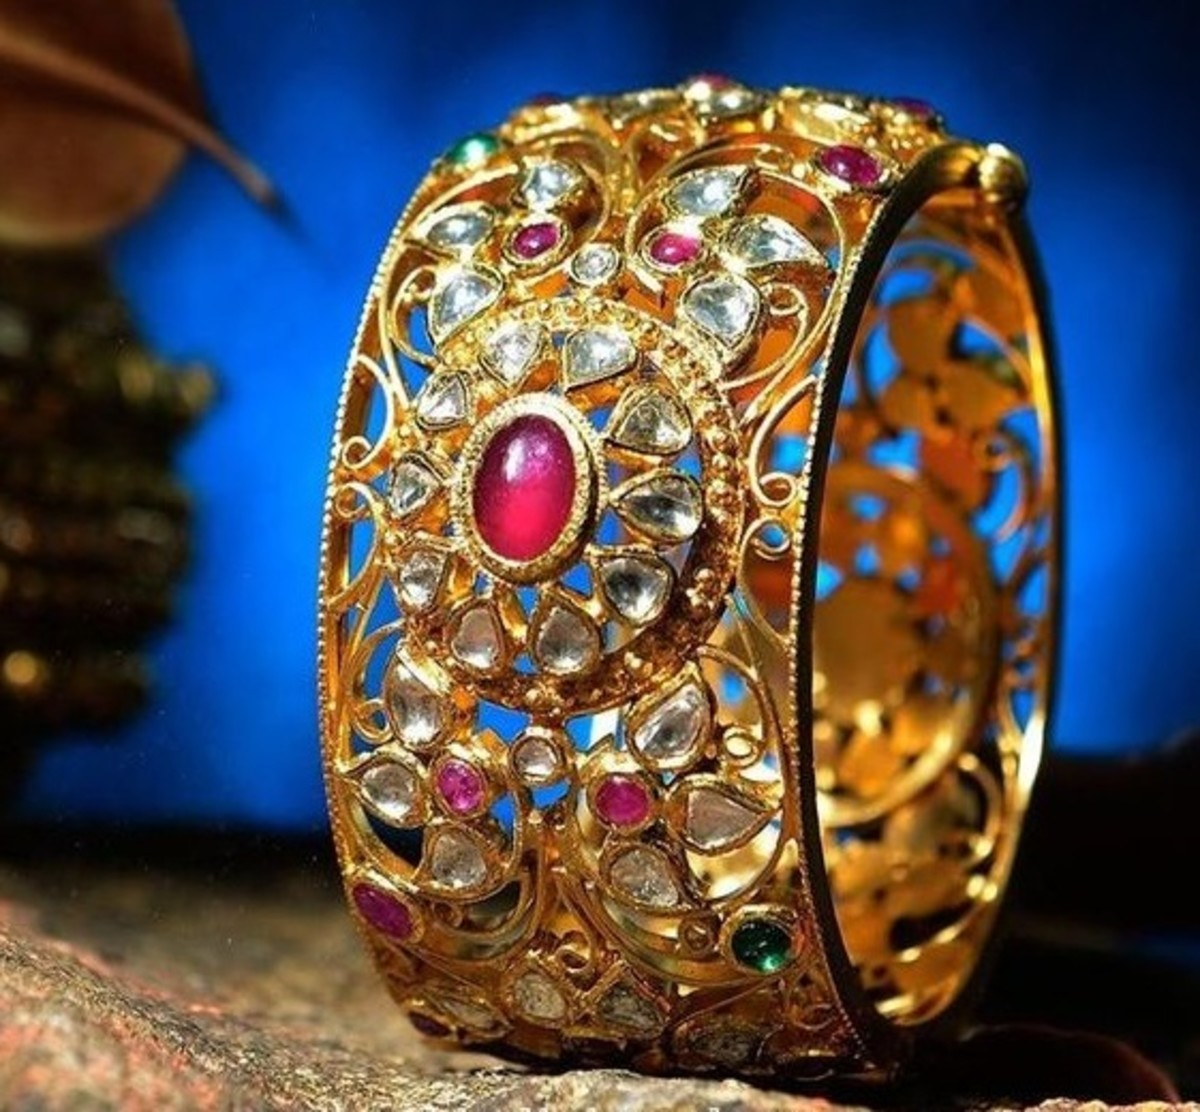 Unique intricate design on gold bangle with red ruby and white kunda